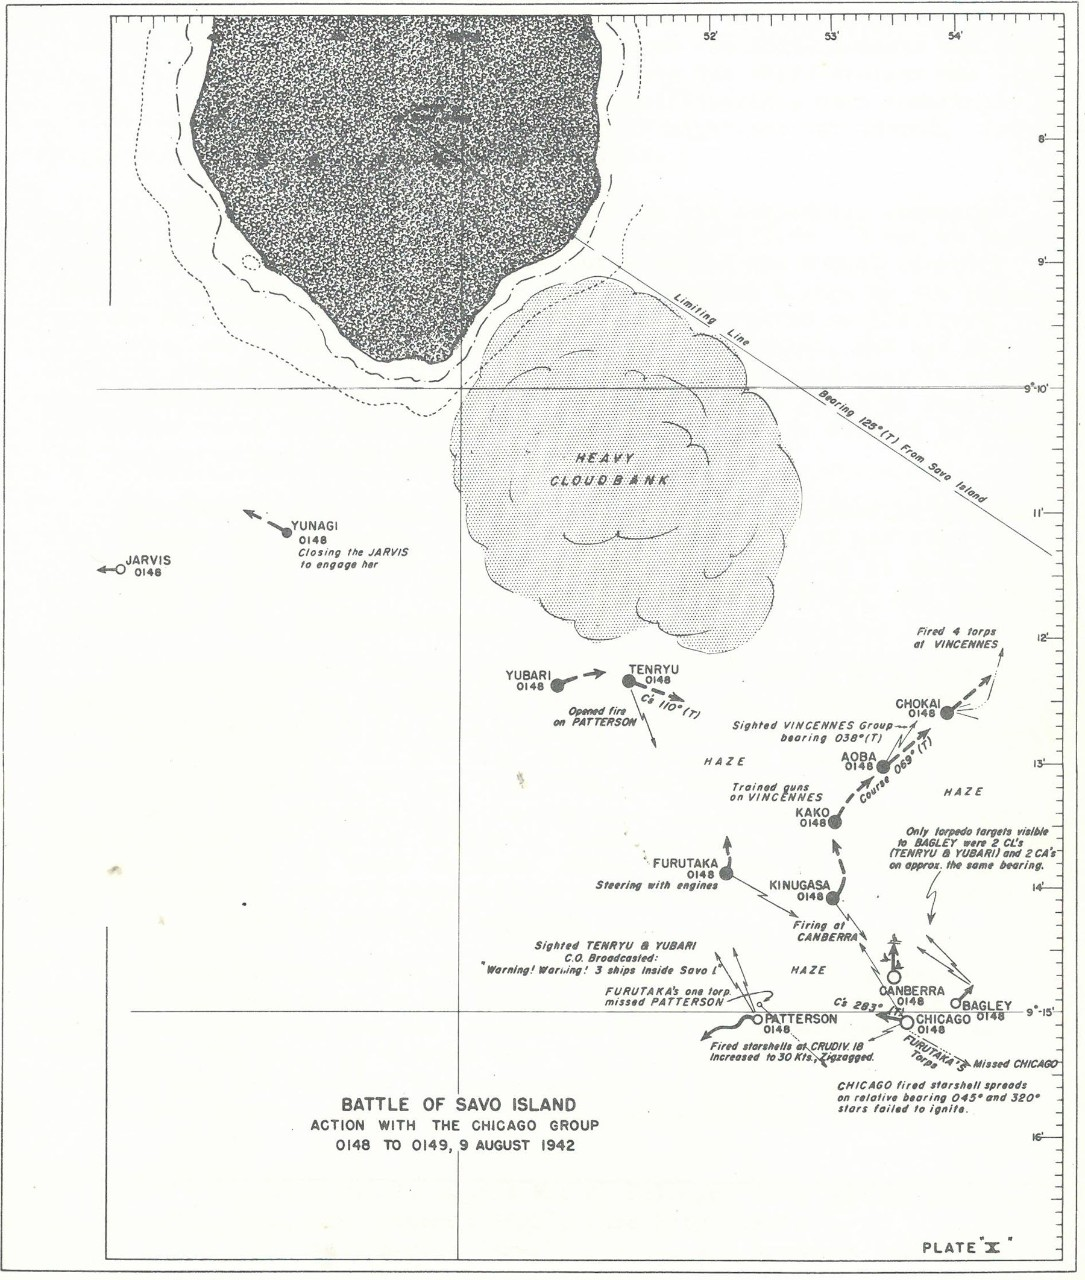 Plate 10: Battle of Savo Island, Action with the CHICAGO Group, 0148 to 0149, 9 August 1942 - chart - The Battle of Savo Island August 9, 1942 Strategical and Tactical Analysis